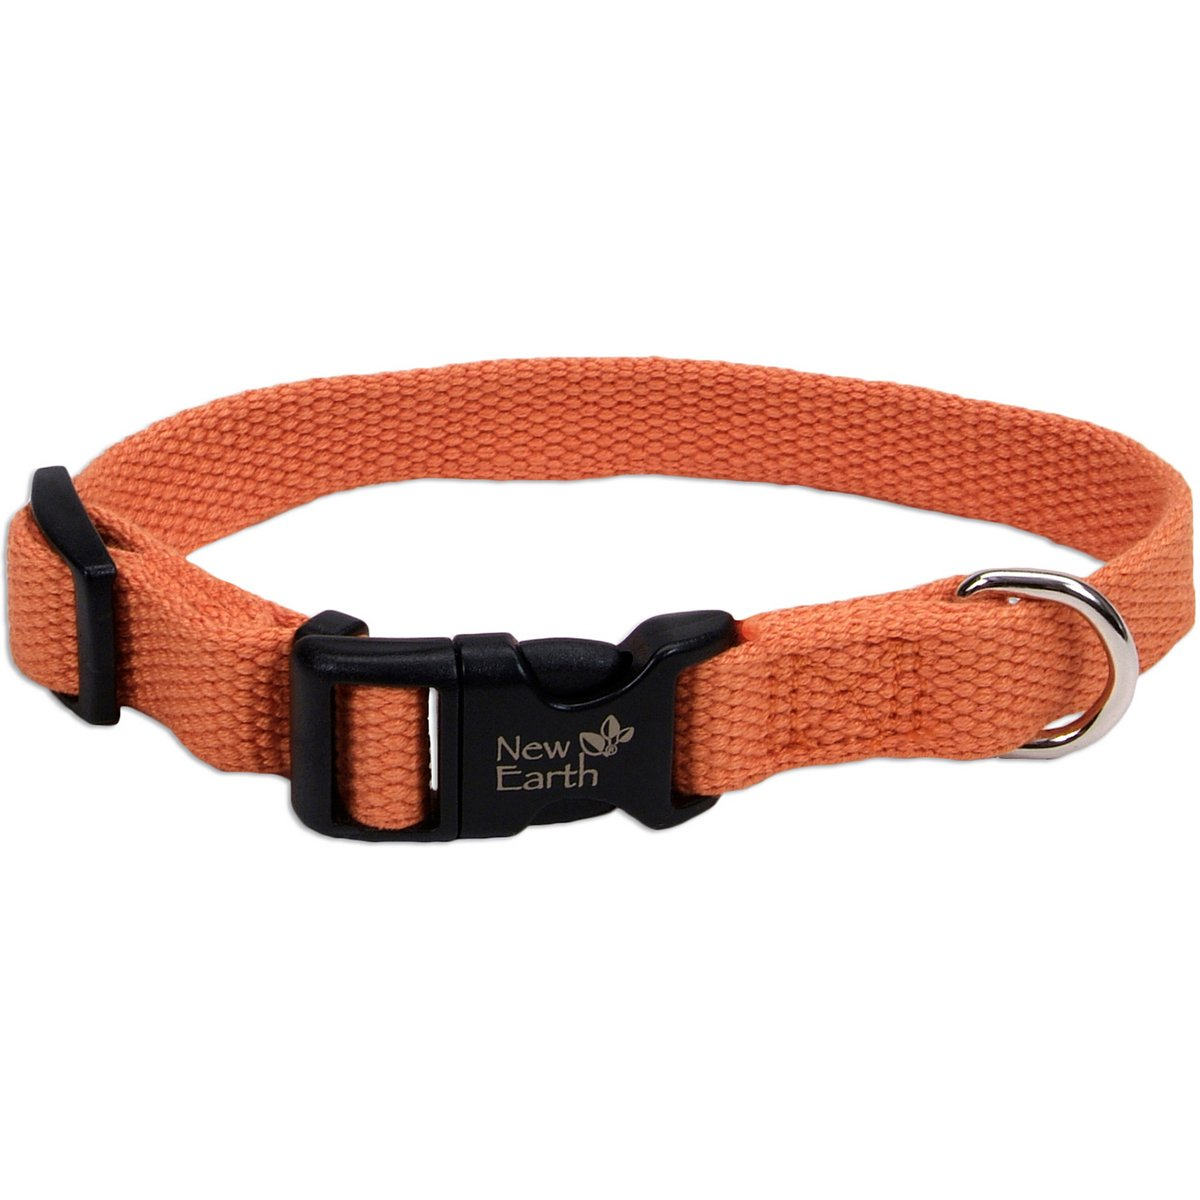 Coastal Pet Products New Earth 14901 PMK26 2.5cm Natural Fibre Soy Adjustable Dog Collar, Large, 18 to 70cm, Pumpkin